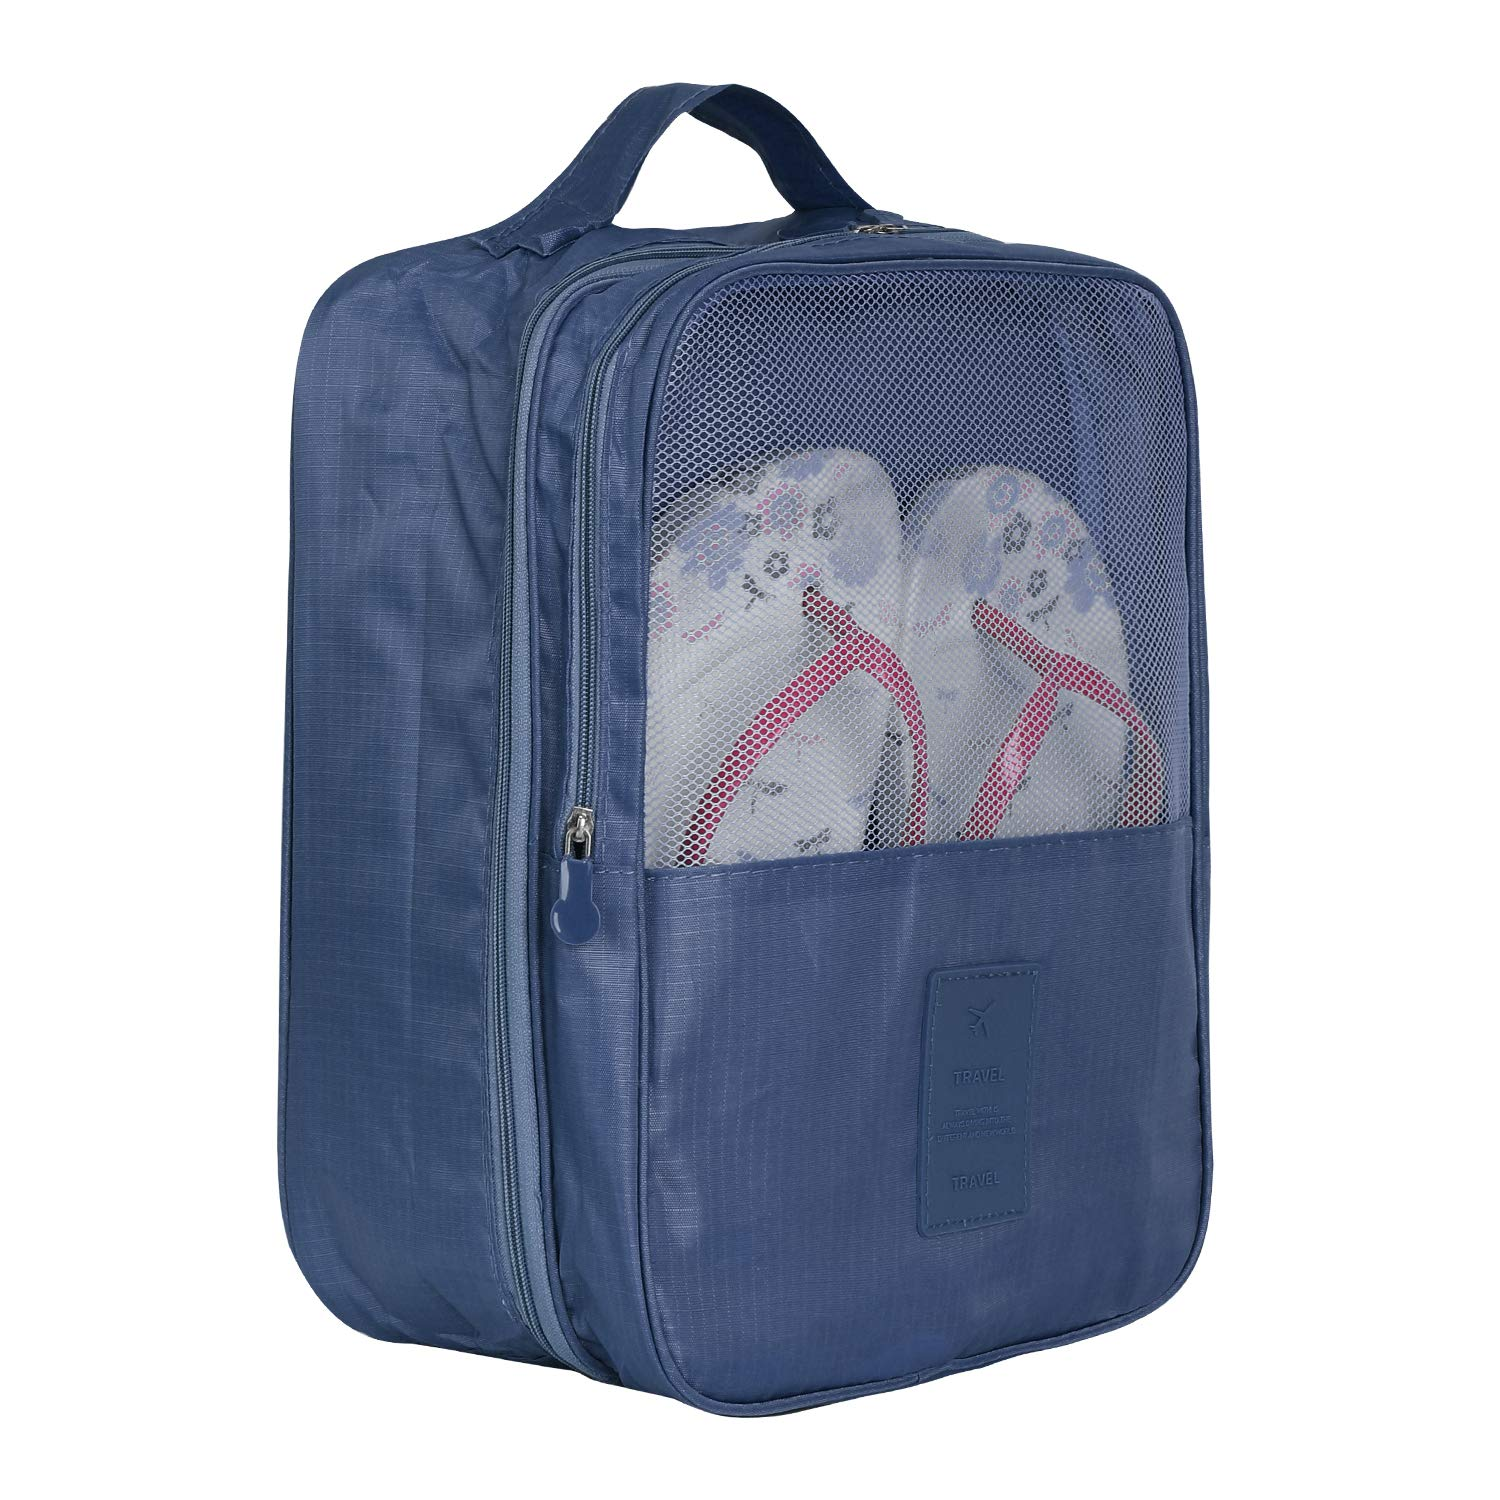 Promover Shoe Storage Bag Holds 3 Pair of Shoes for Travel and Daily Use(Navy Blue)